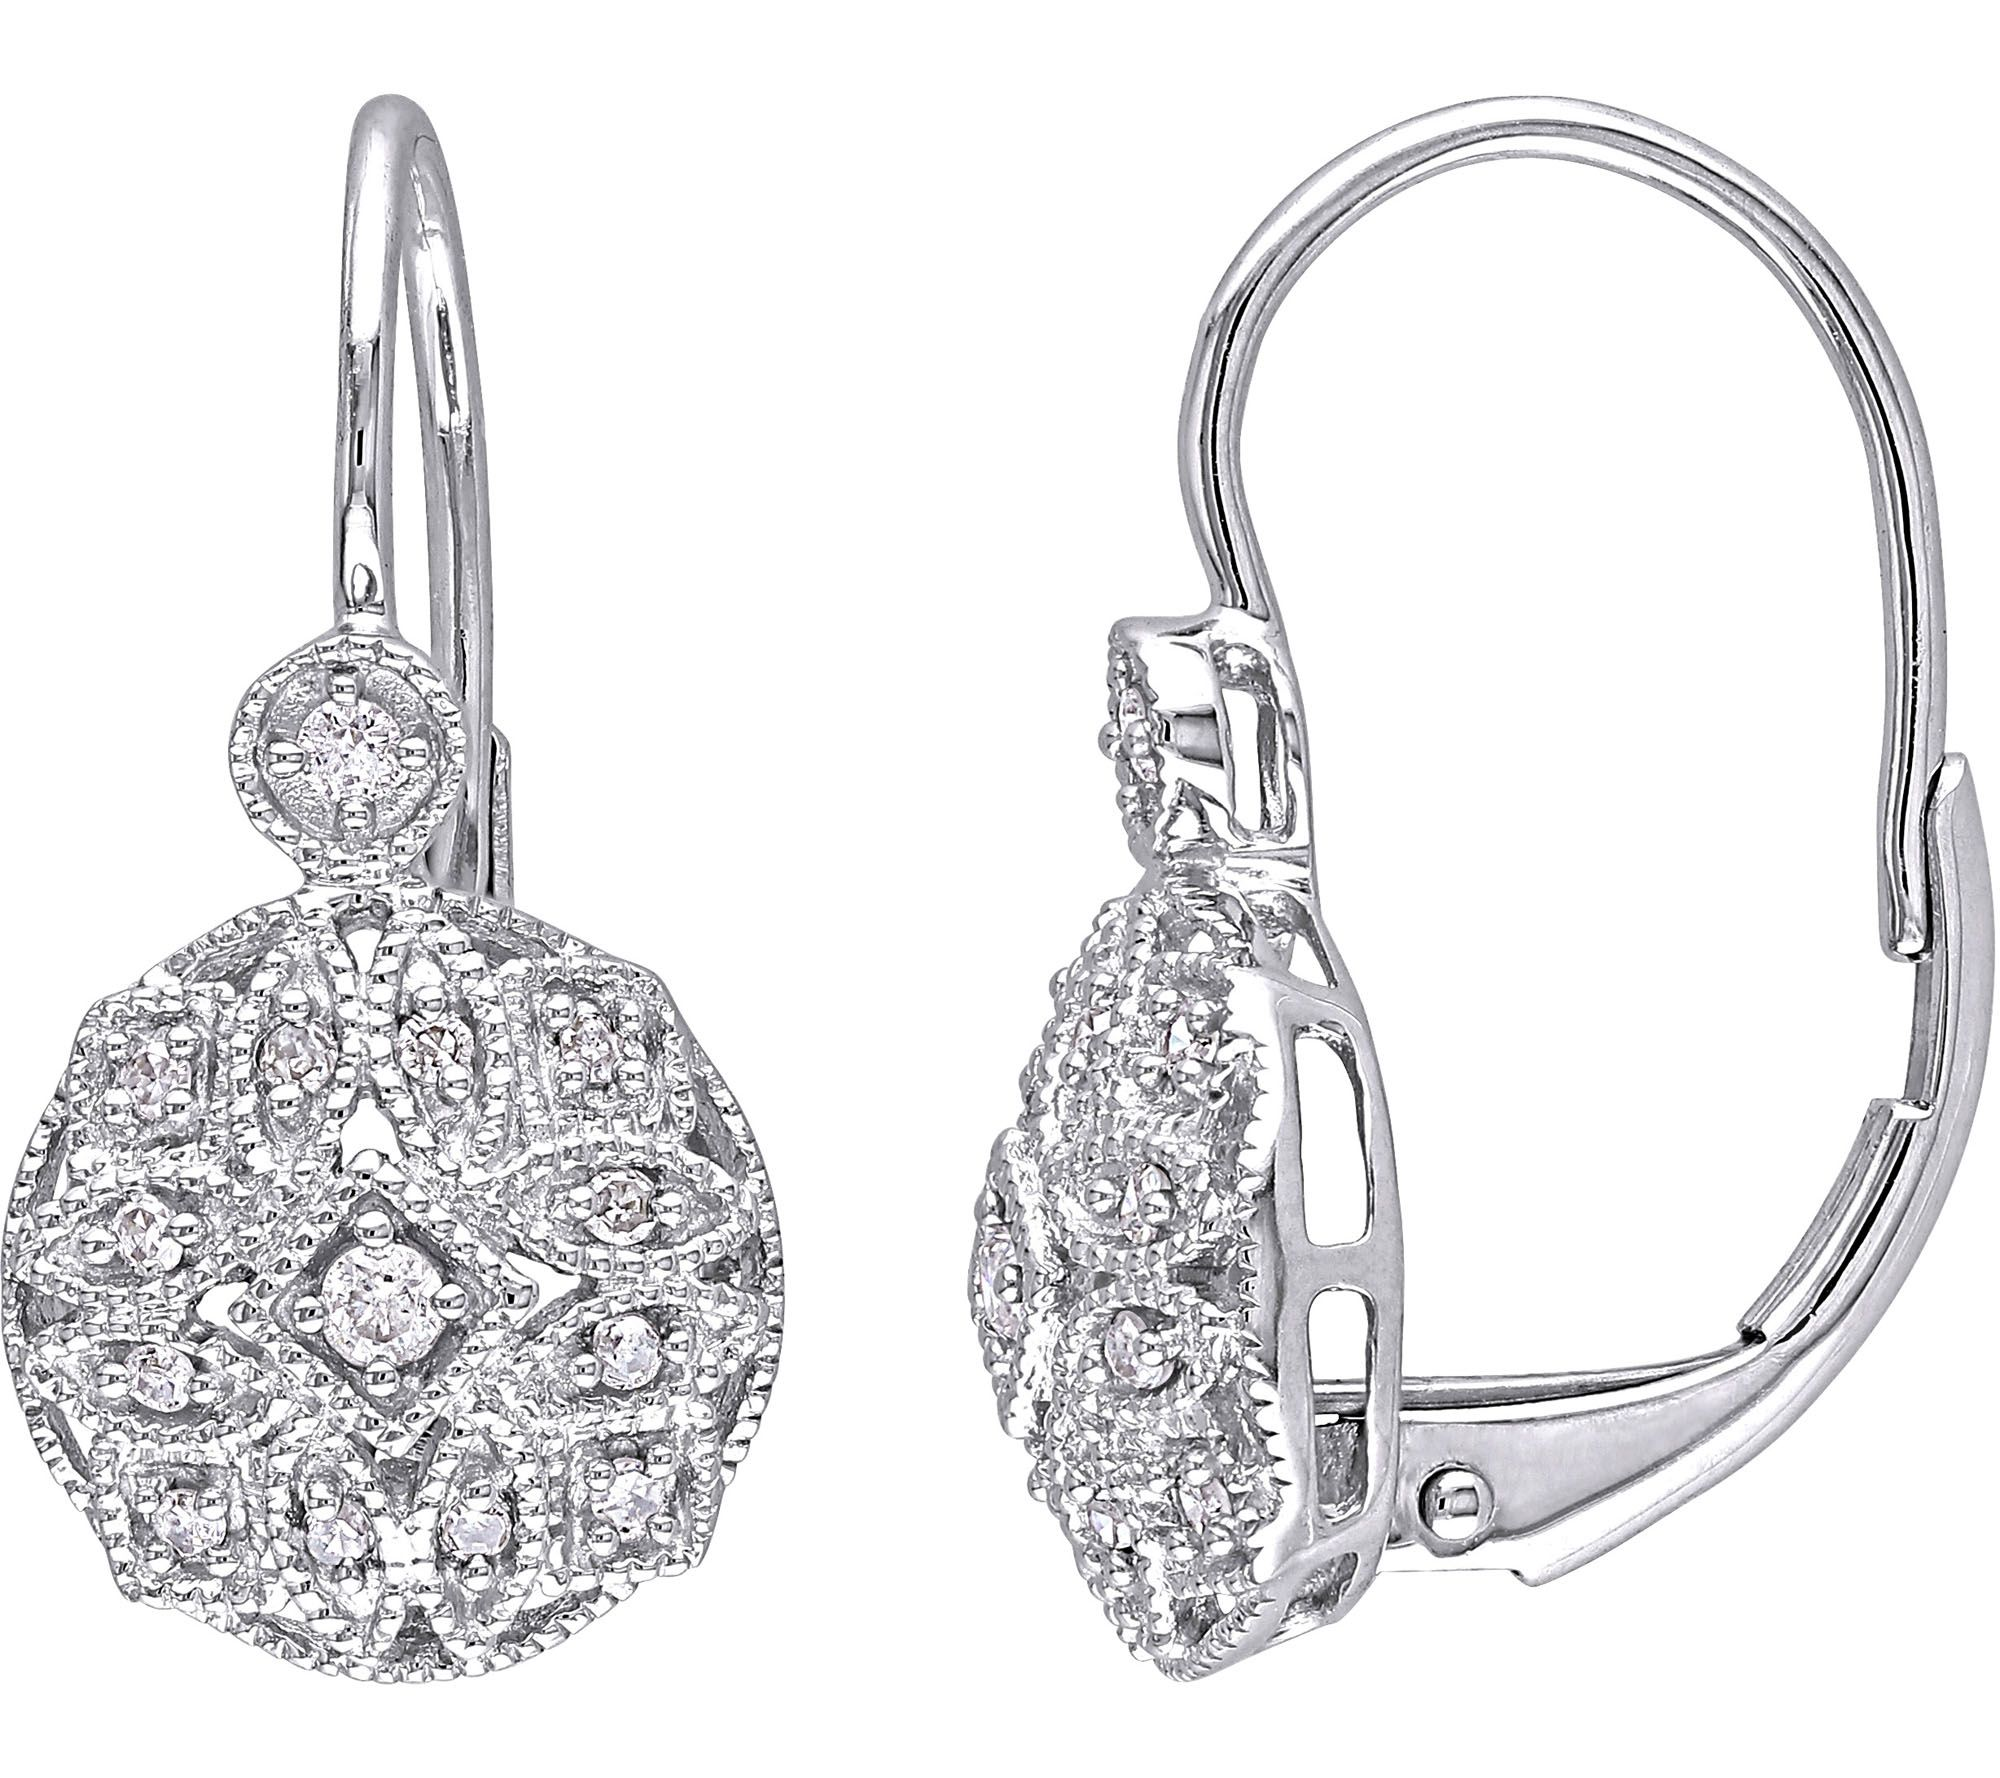 diamond filigree earrings 14k white gold 1 8cttw